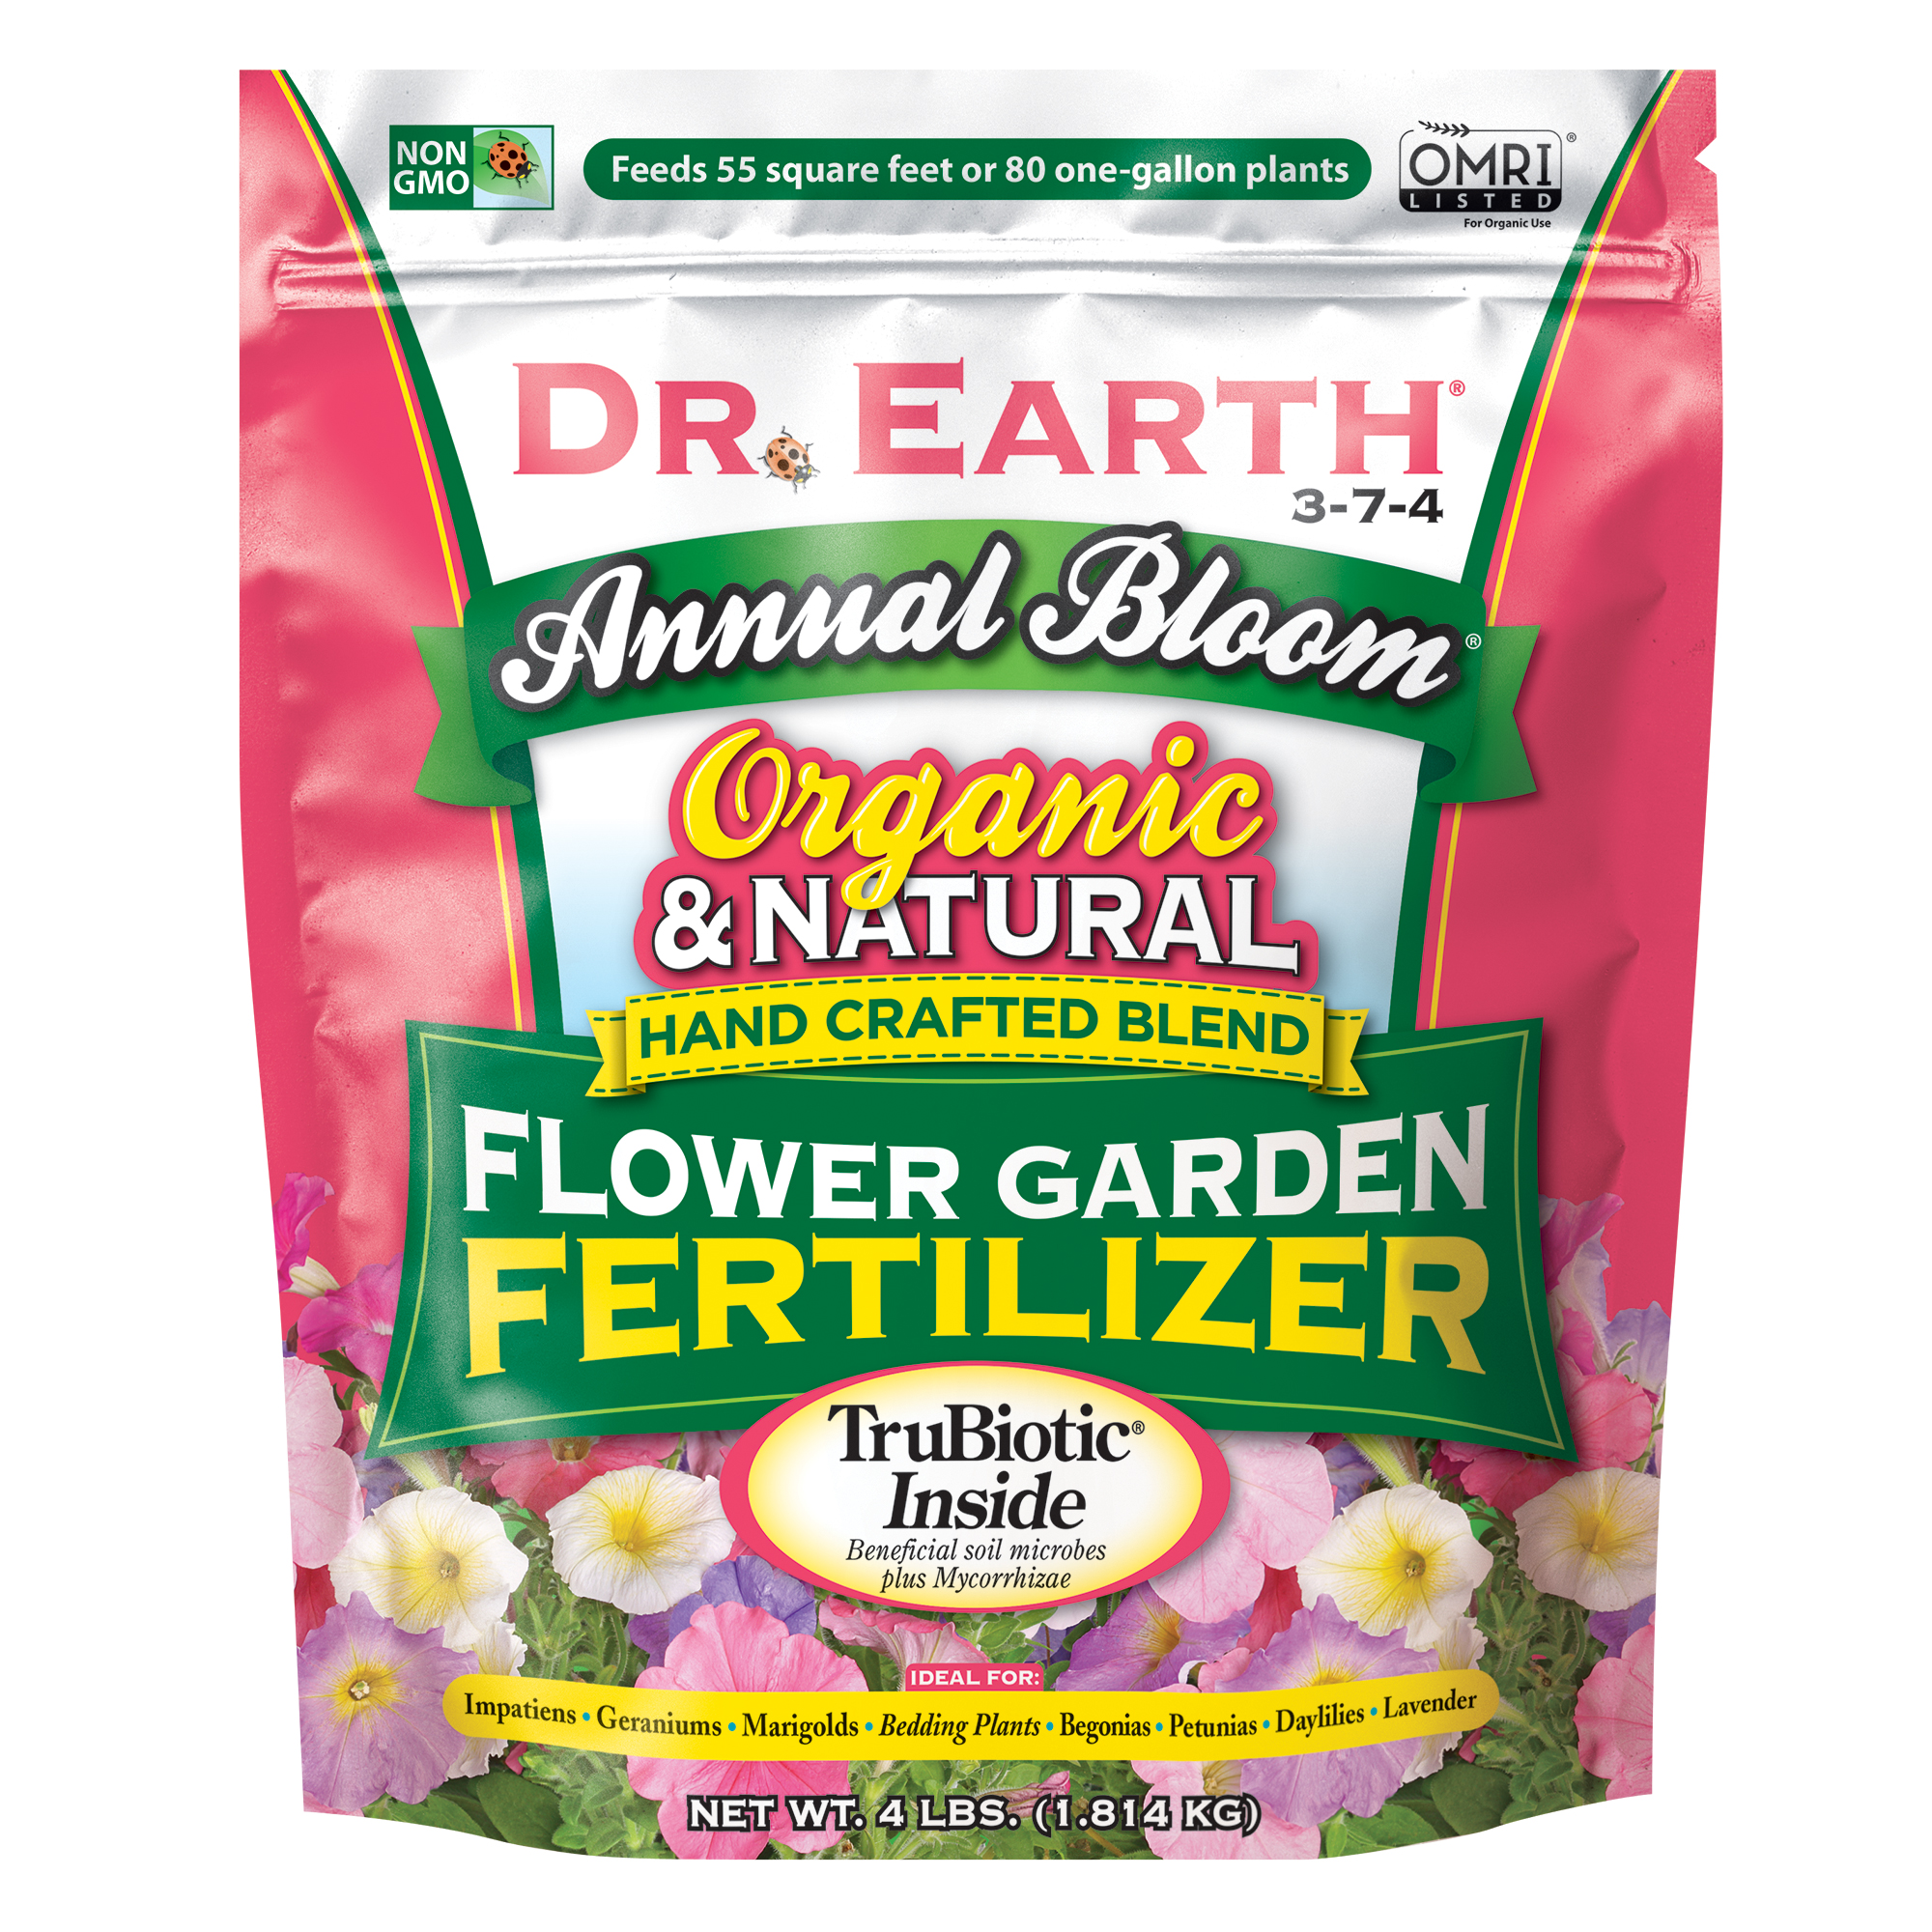 ANNUAL BLOOM FLOWER GARDEN PANSY FERTILIZER 4lb